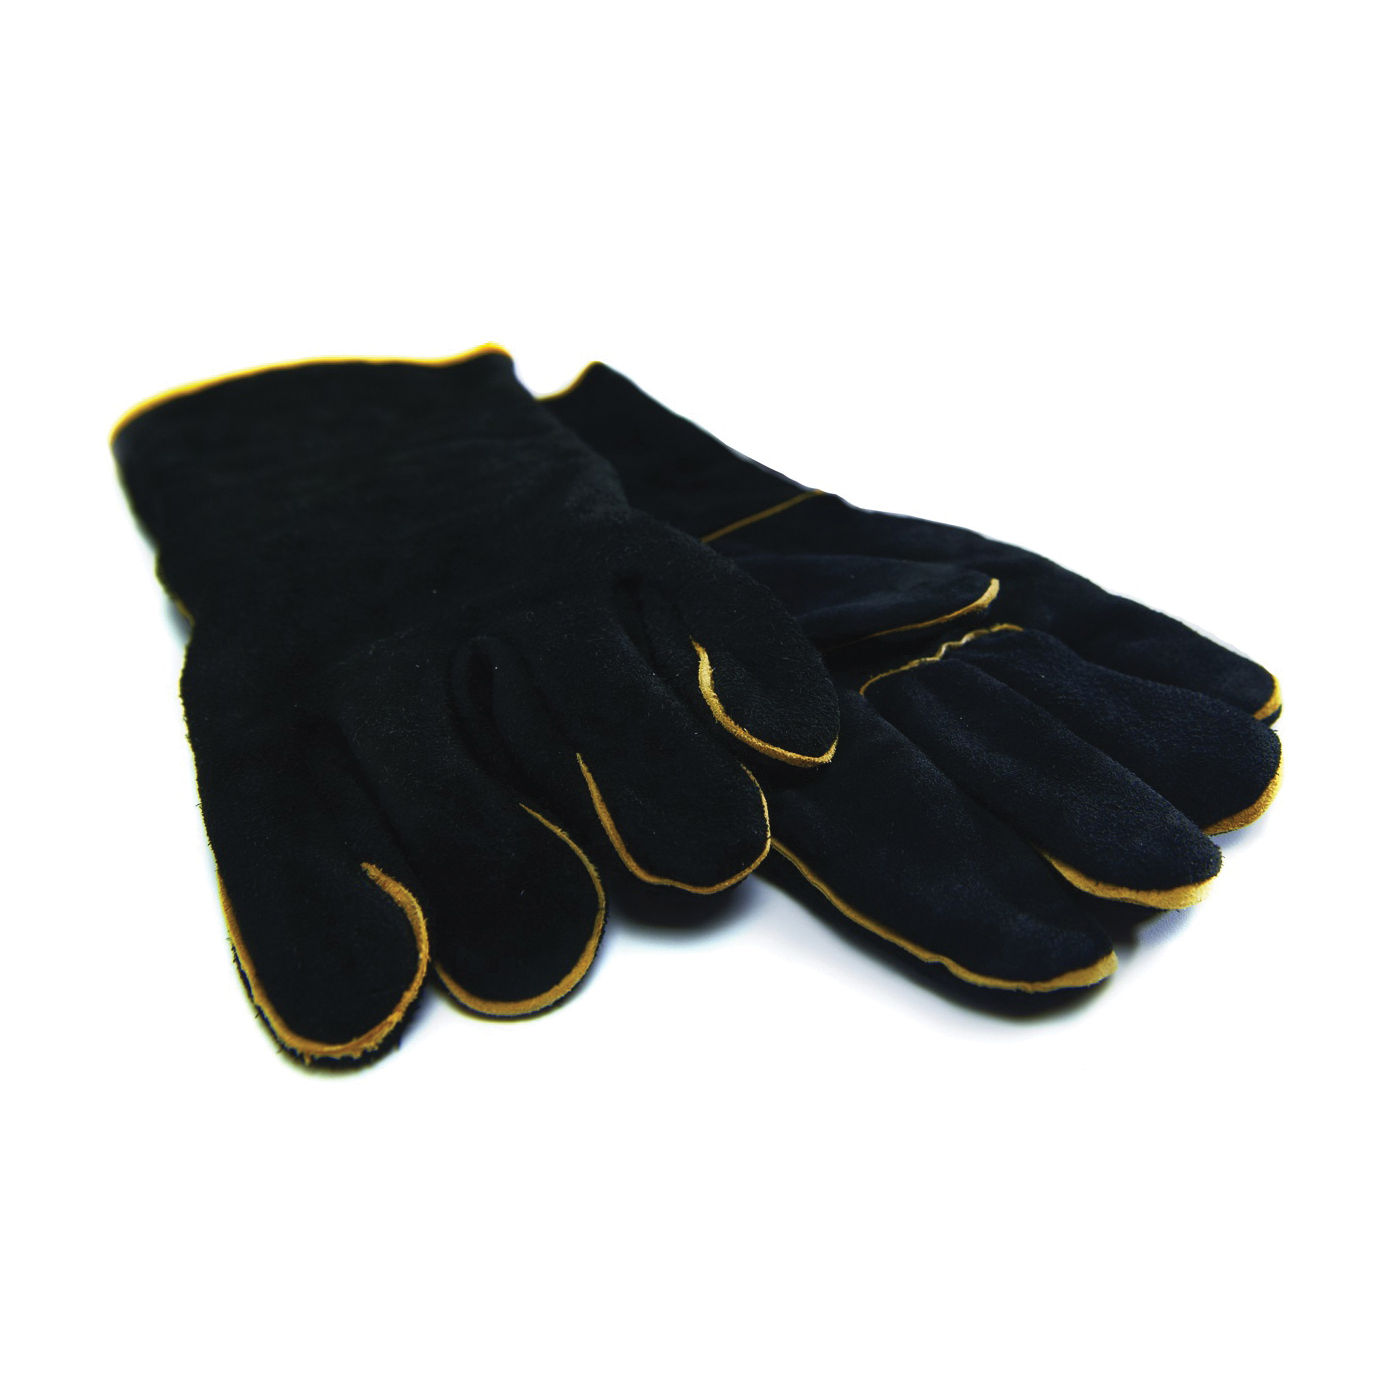 Picture of GrillPro 00528 BBQ Gloves, #1, Leather, Black